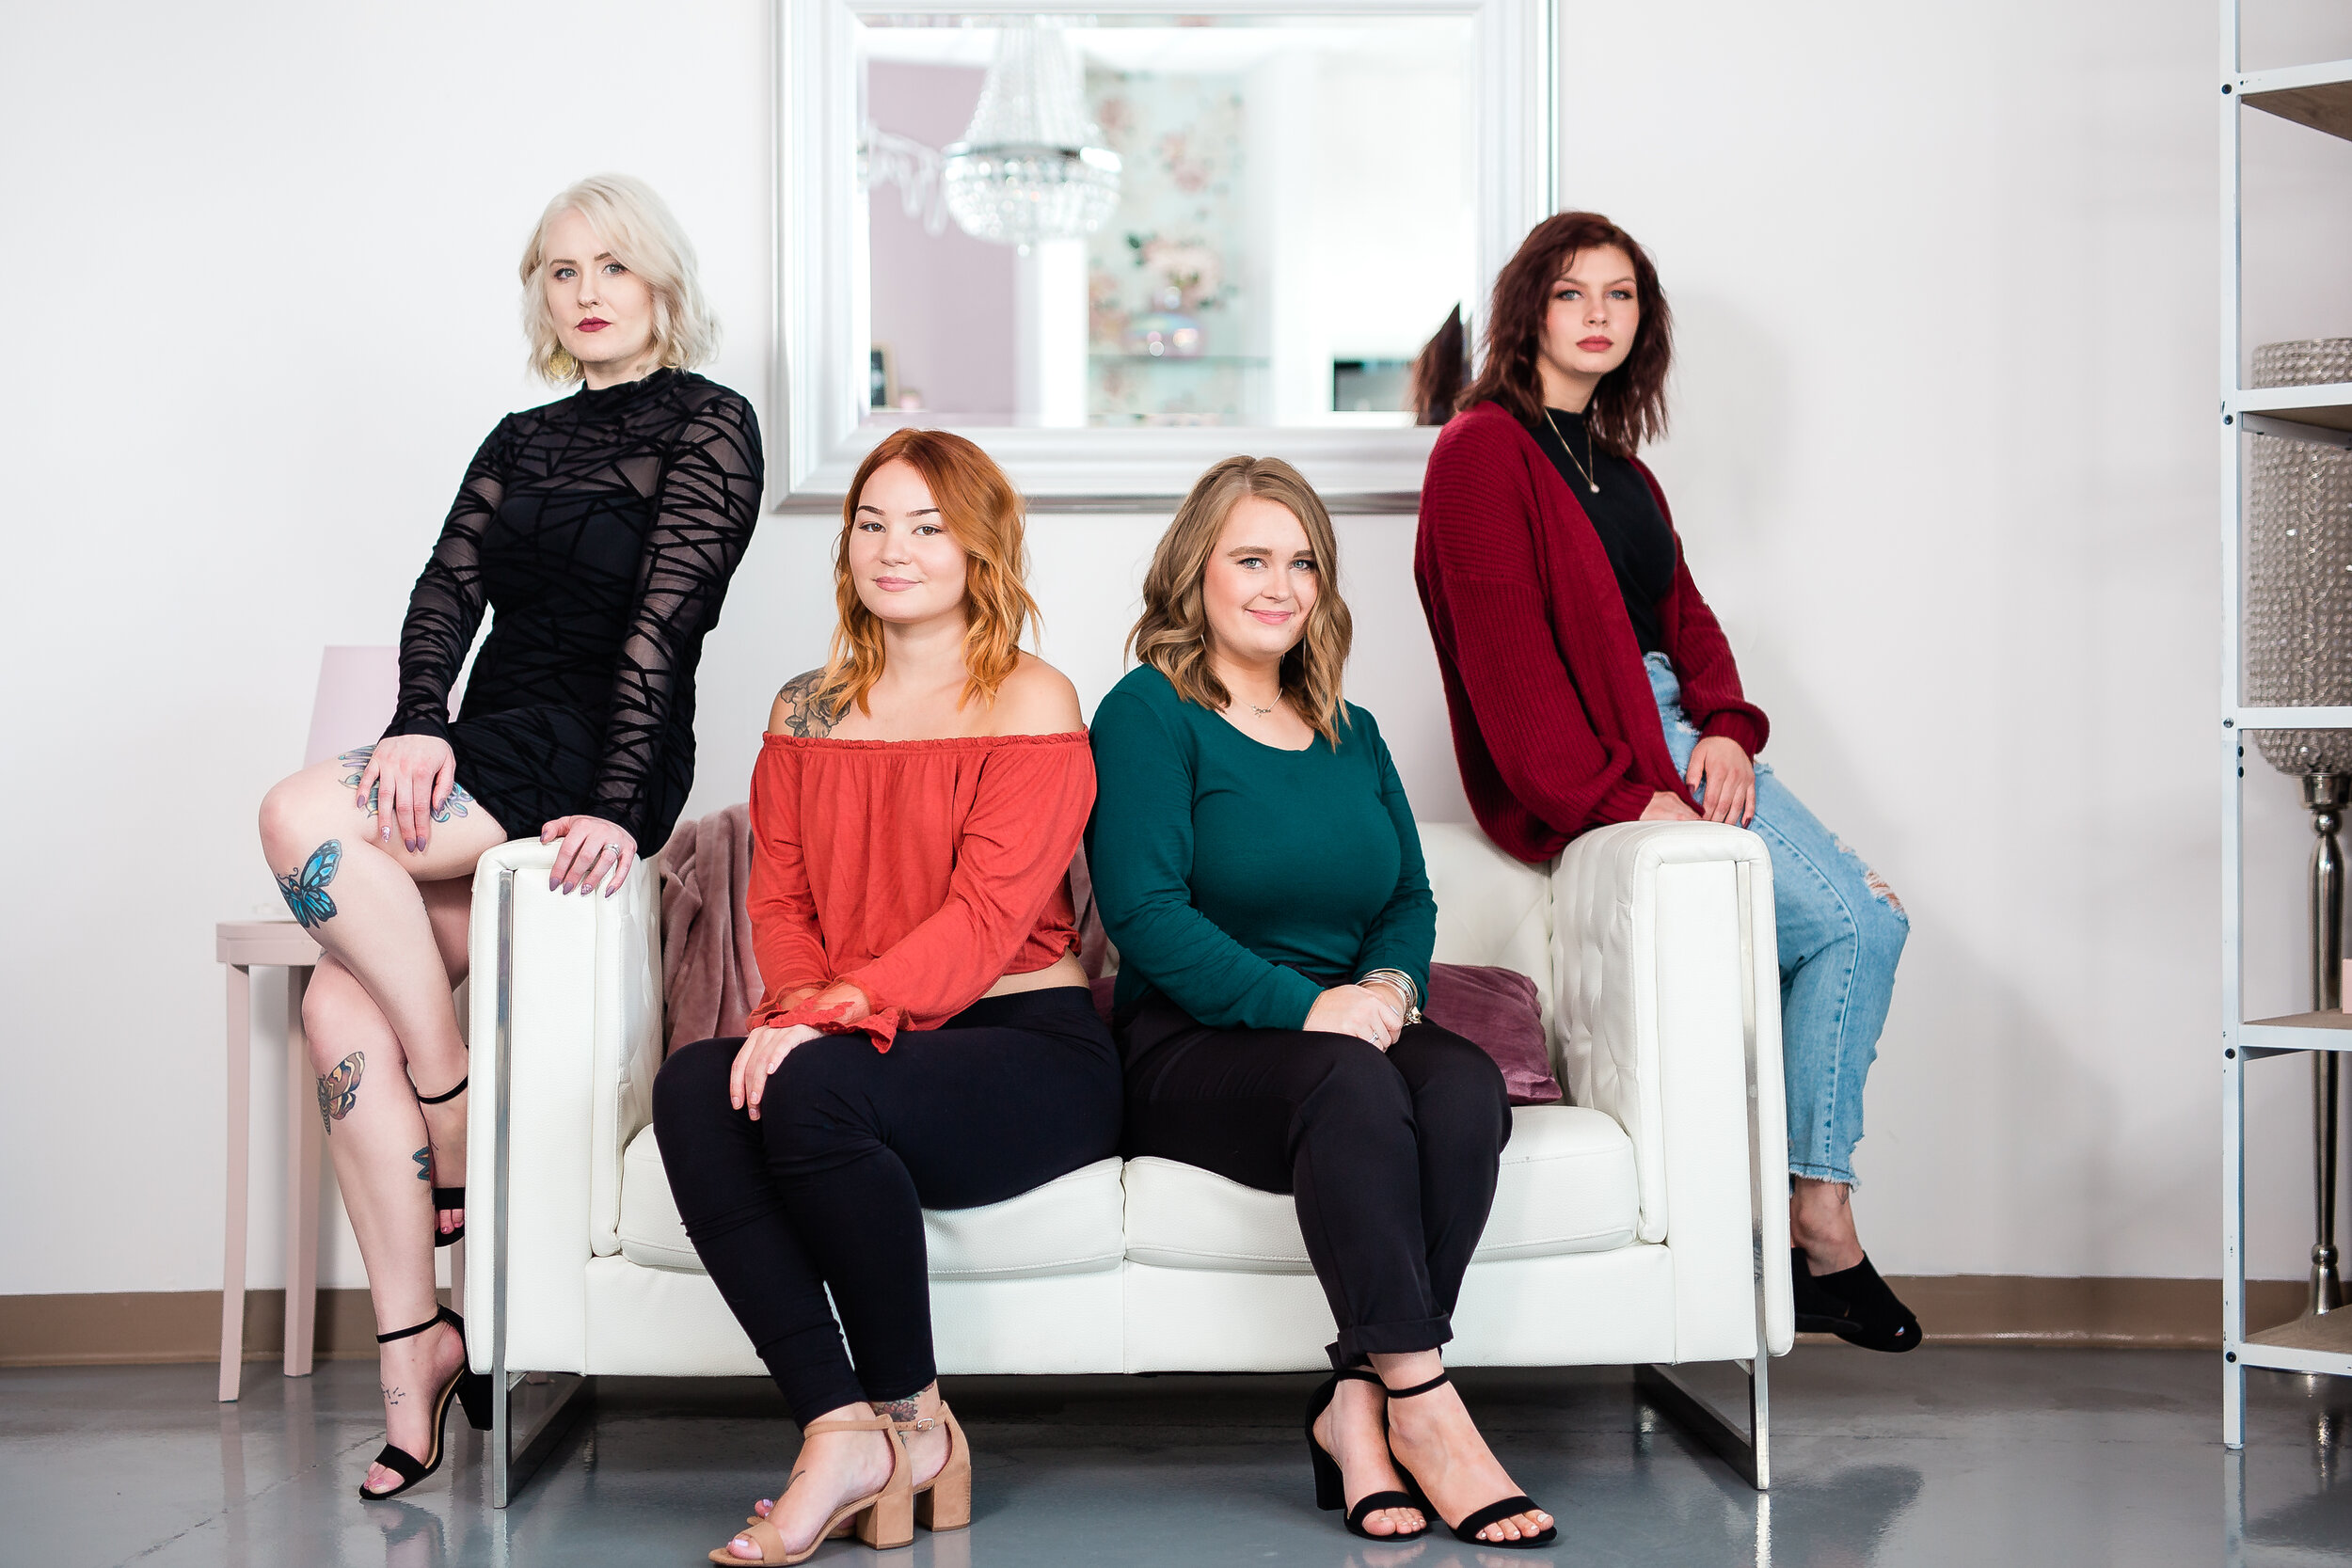 Blush Staff - Blush Stylists are stylists who work directly under Blush Salon. Unlike the Independent Stylists, these stylists policies, and services are under Blush Salon. Their pricing is based on a level system which allows guests to choose the level that best fits their needs and their budget.